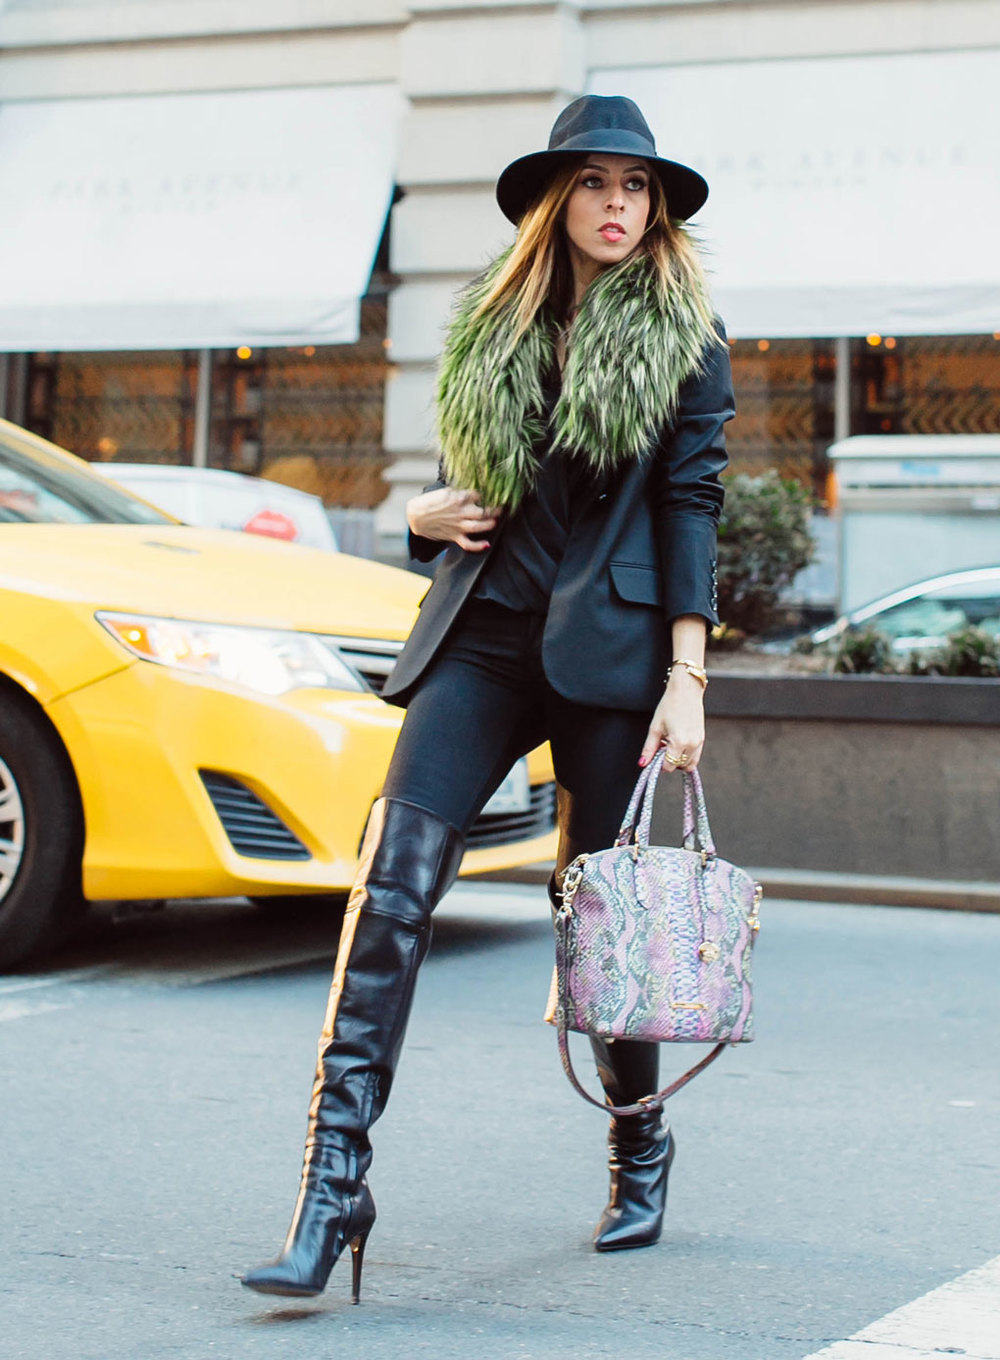 Sydne-STyle-shows-how-to-wear-bcbg-over-the-knee-boots-fashion-week.jpg